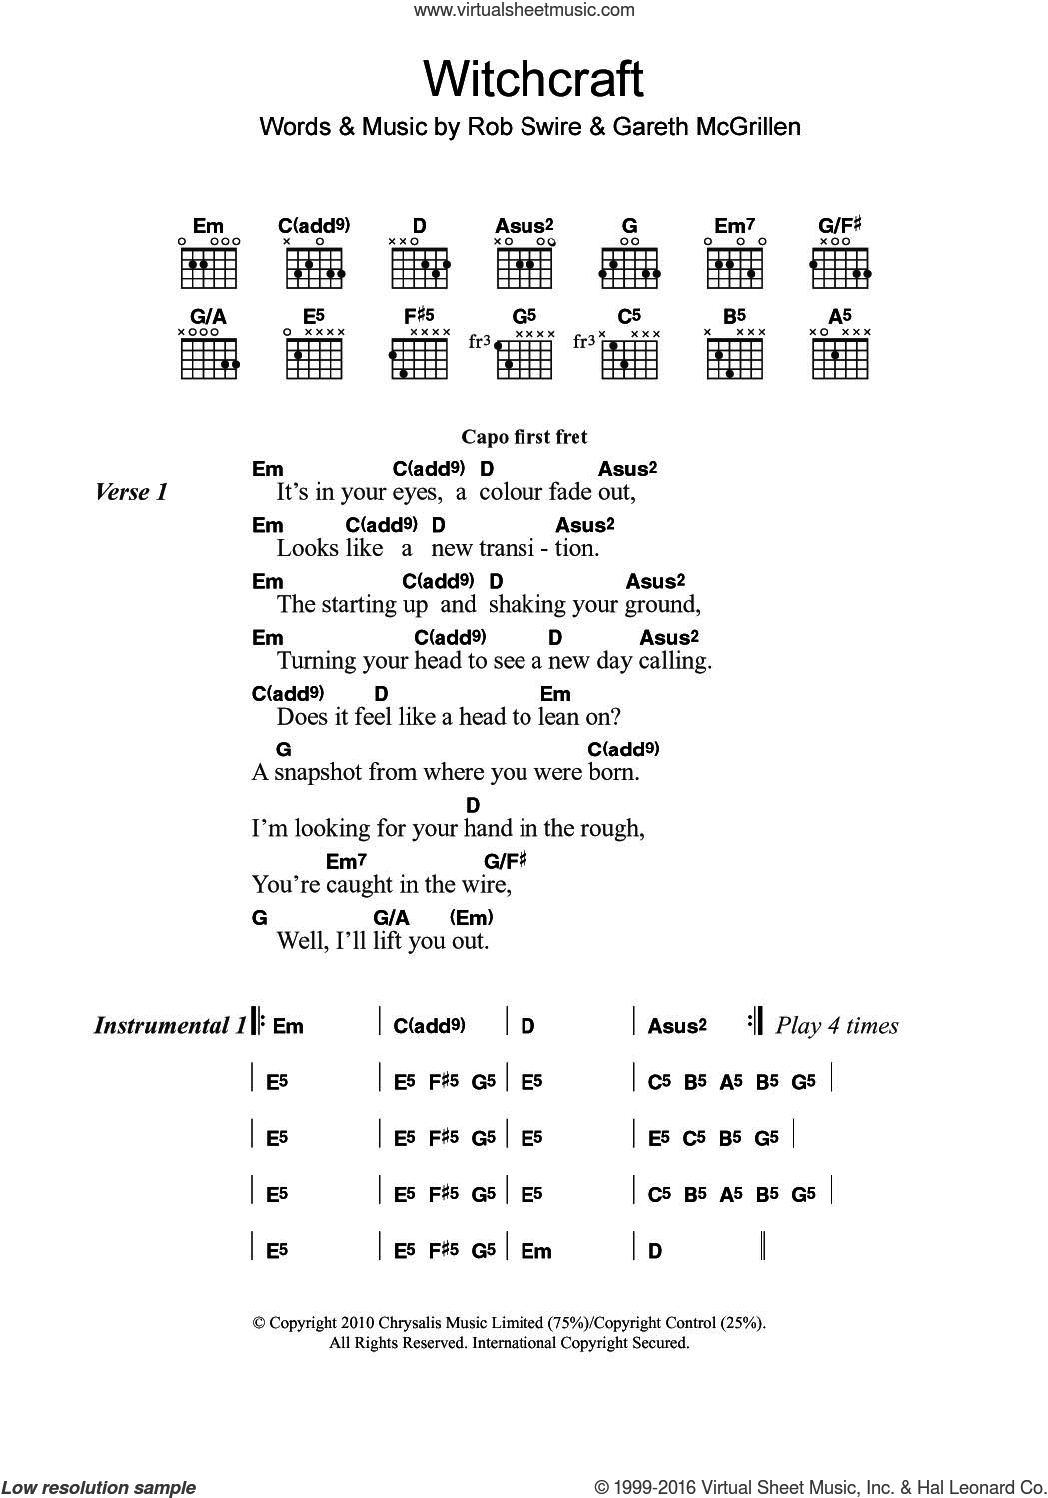 Pendulum Witchcraft Sheet Music For Guitar Chords Pdf